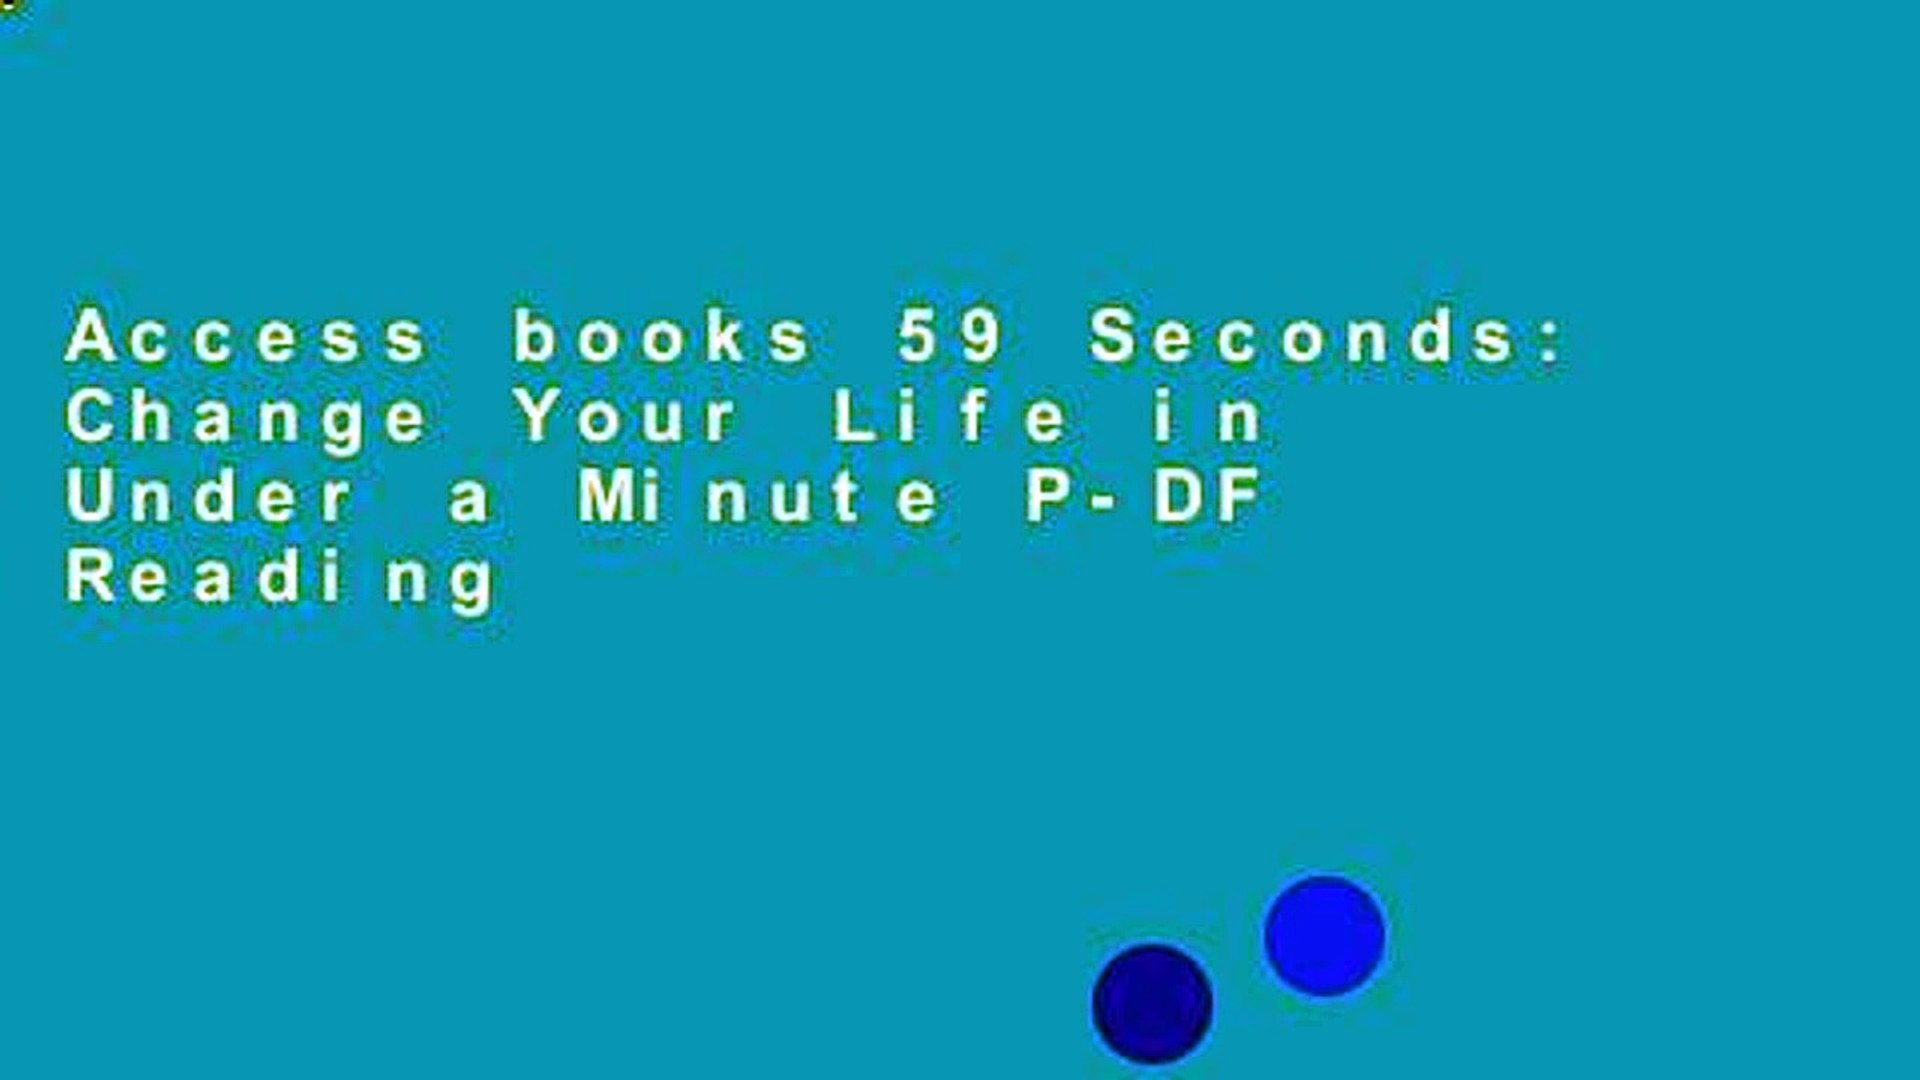 59 Seconds Richard Wiseman access books 59 seconds: change your life in under a minute p-df reading